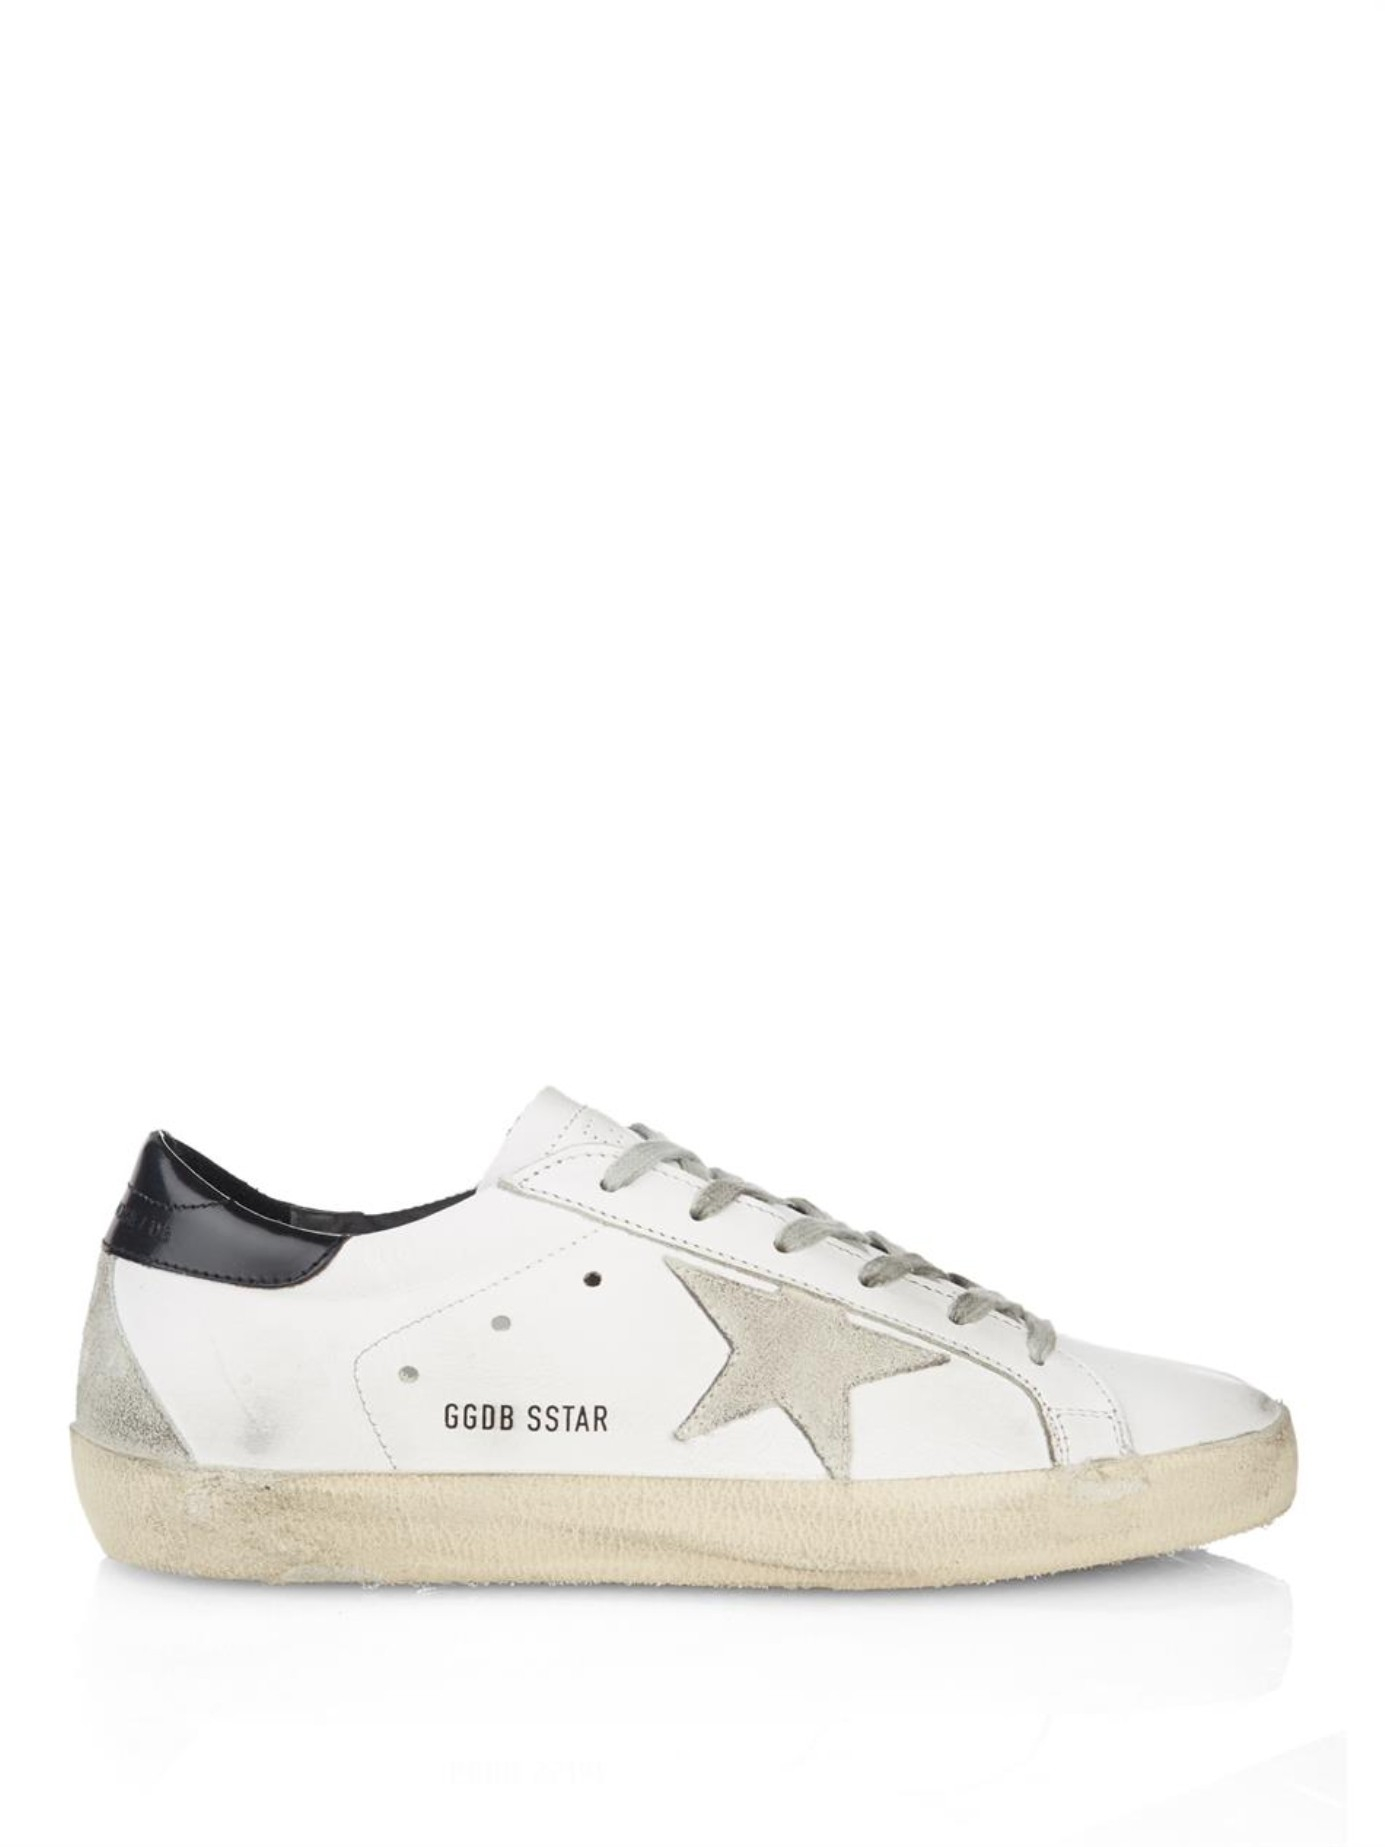 Superstar Leather Sneakers - White Golden Goose iXLtB